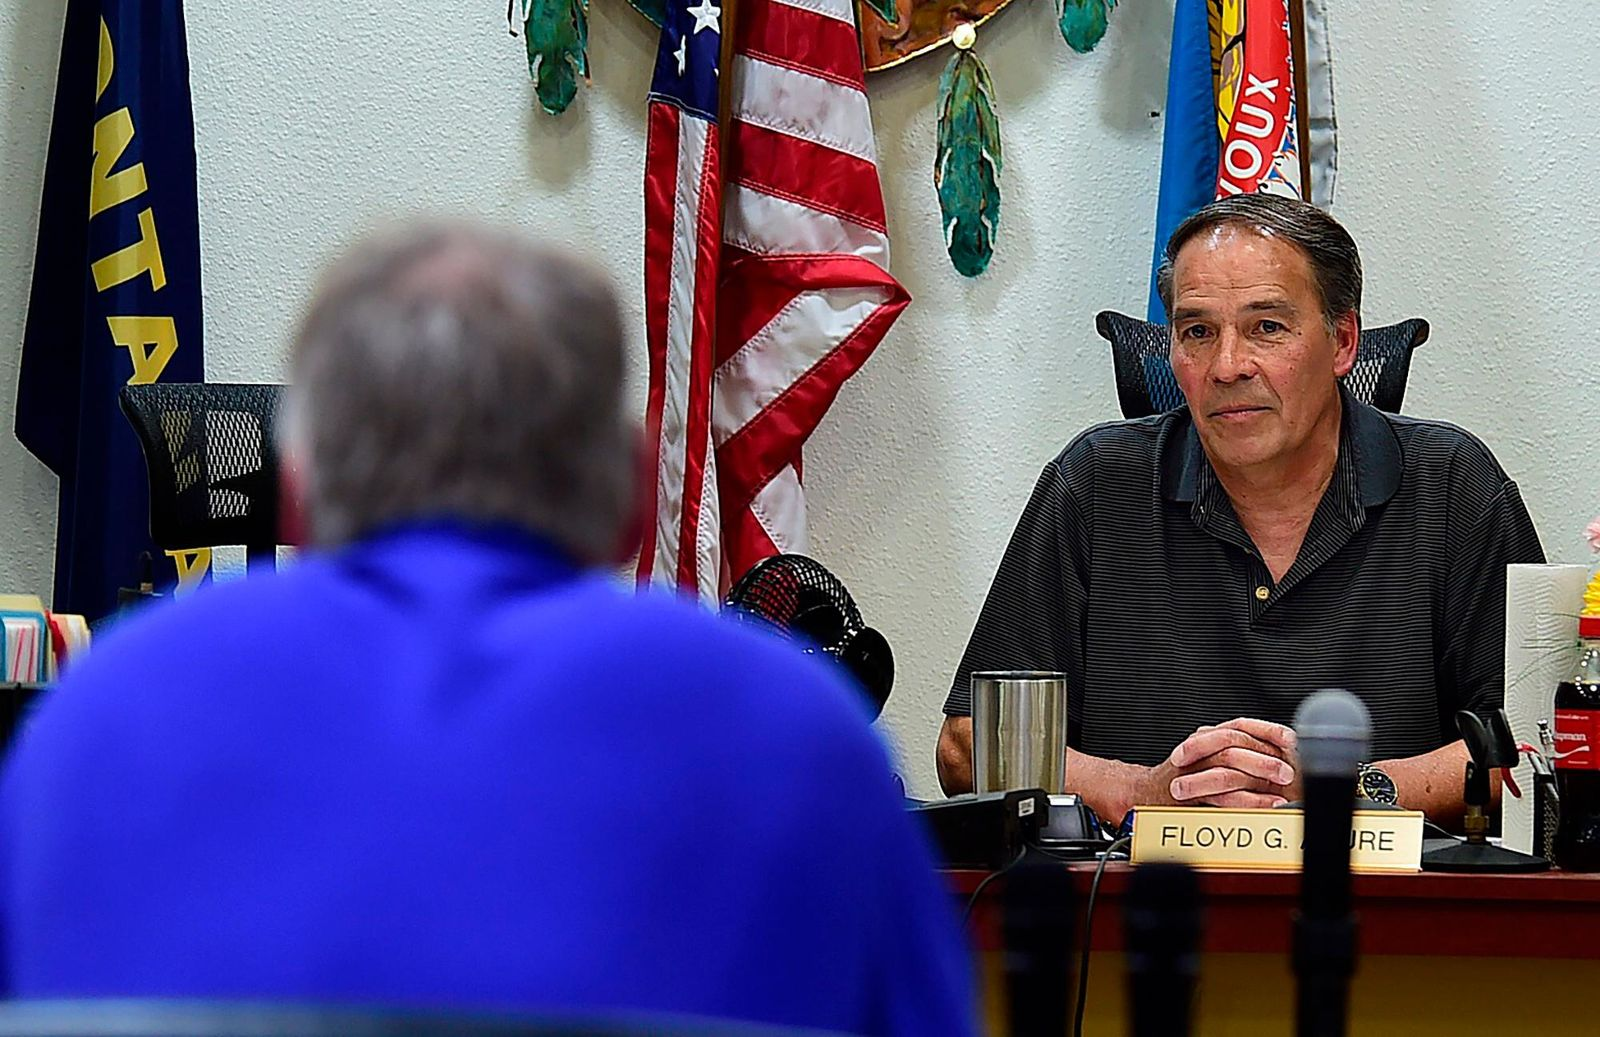 In this May 2018 file photo, Secretary of Interior Ryan Zinke, left, talks with Fort Peck Tribal Chairman Floyd Azure as Zinke met with residents in Fort Peck and the Fort Peck Tribal Council in Poplar, Mont. Major construction projects moving forward along the U.S. borders with Canada and Mexico amid the coronavirus pandemic are raising fears workers could spread infections within nearby communities, including several Native American tribes. Azure said an influx of pipeline workers to northeastern Montana could accelerate the spread of the virus that has so far spared the reservation. (Larry Mayer/The Billings Gazette via AP, File)